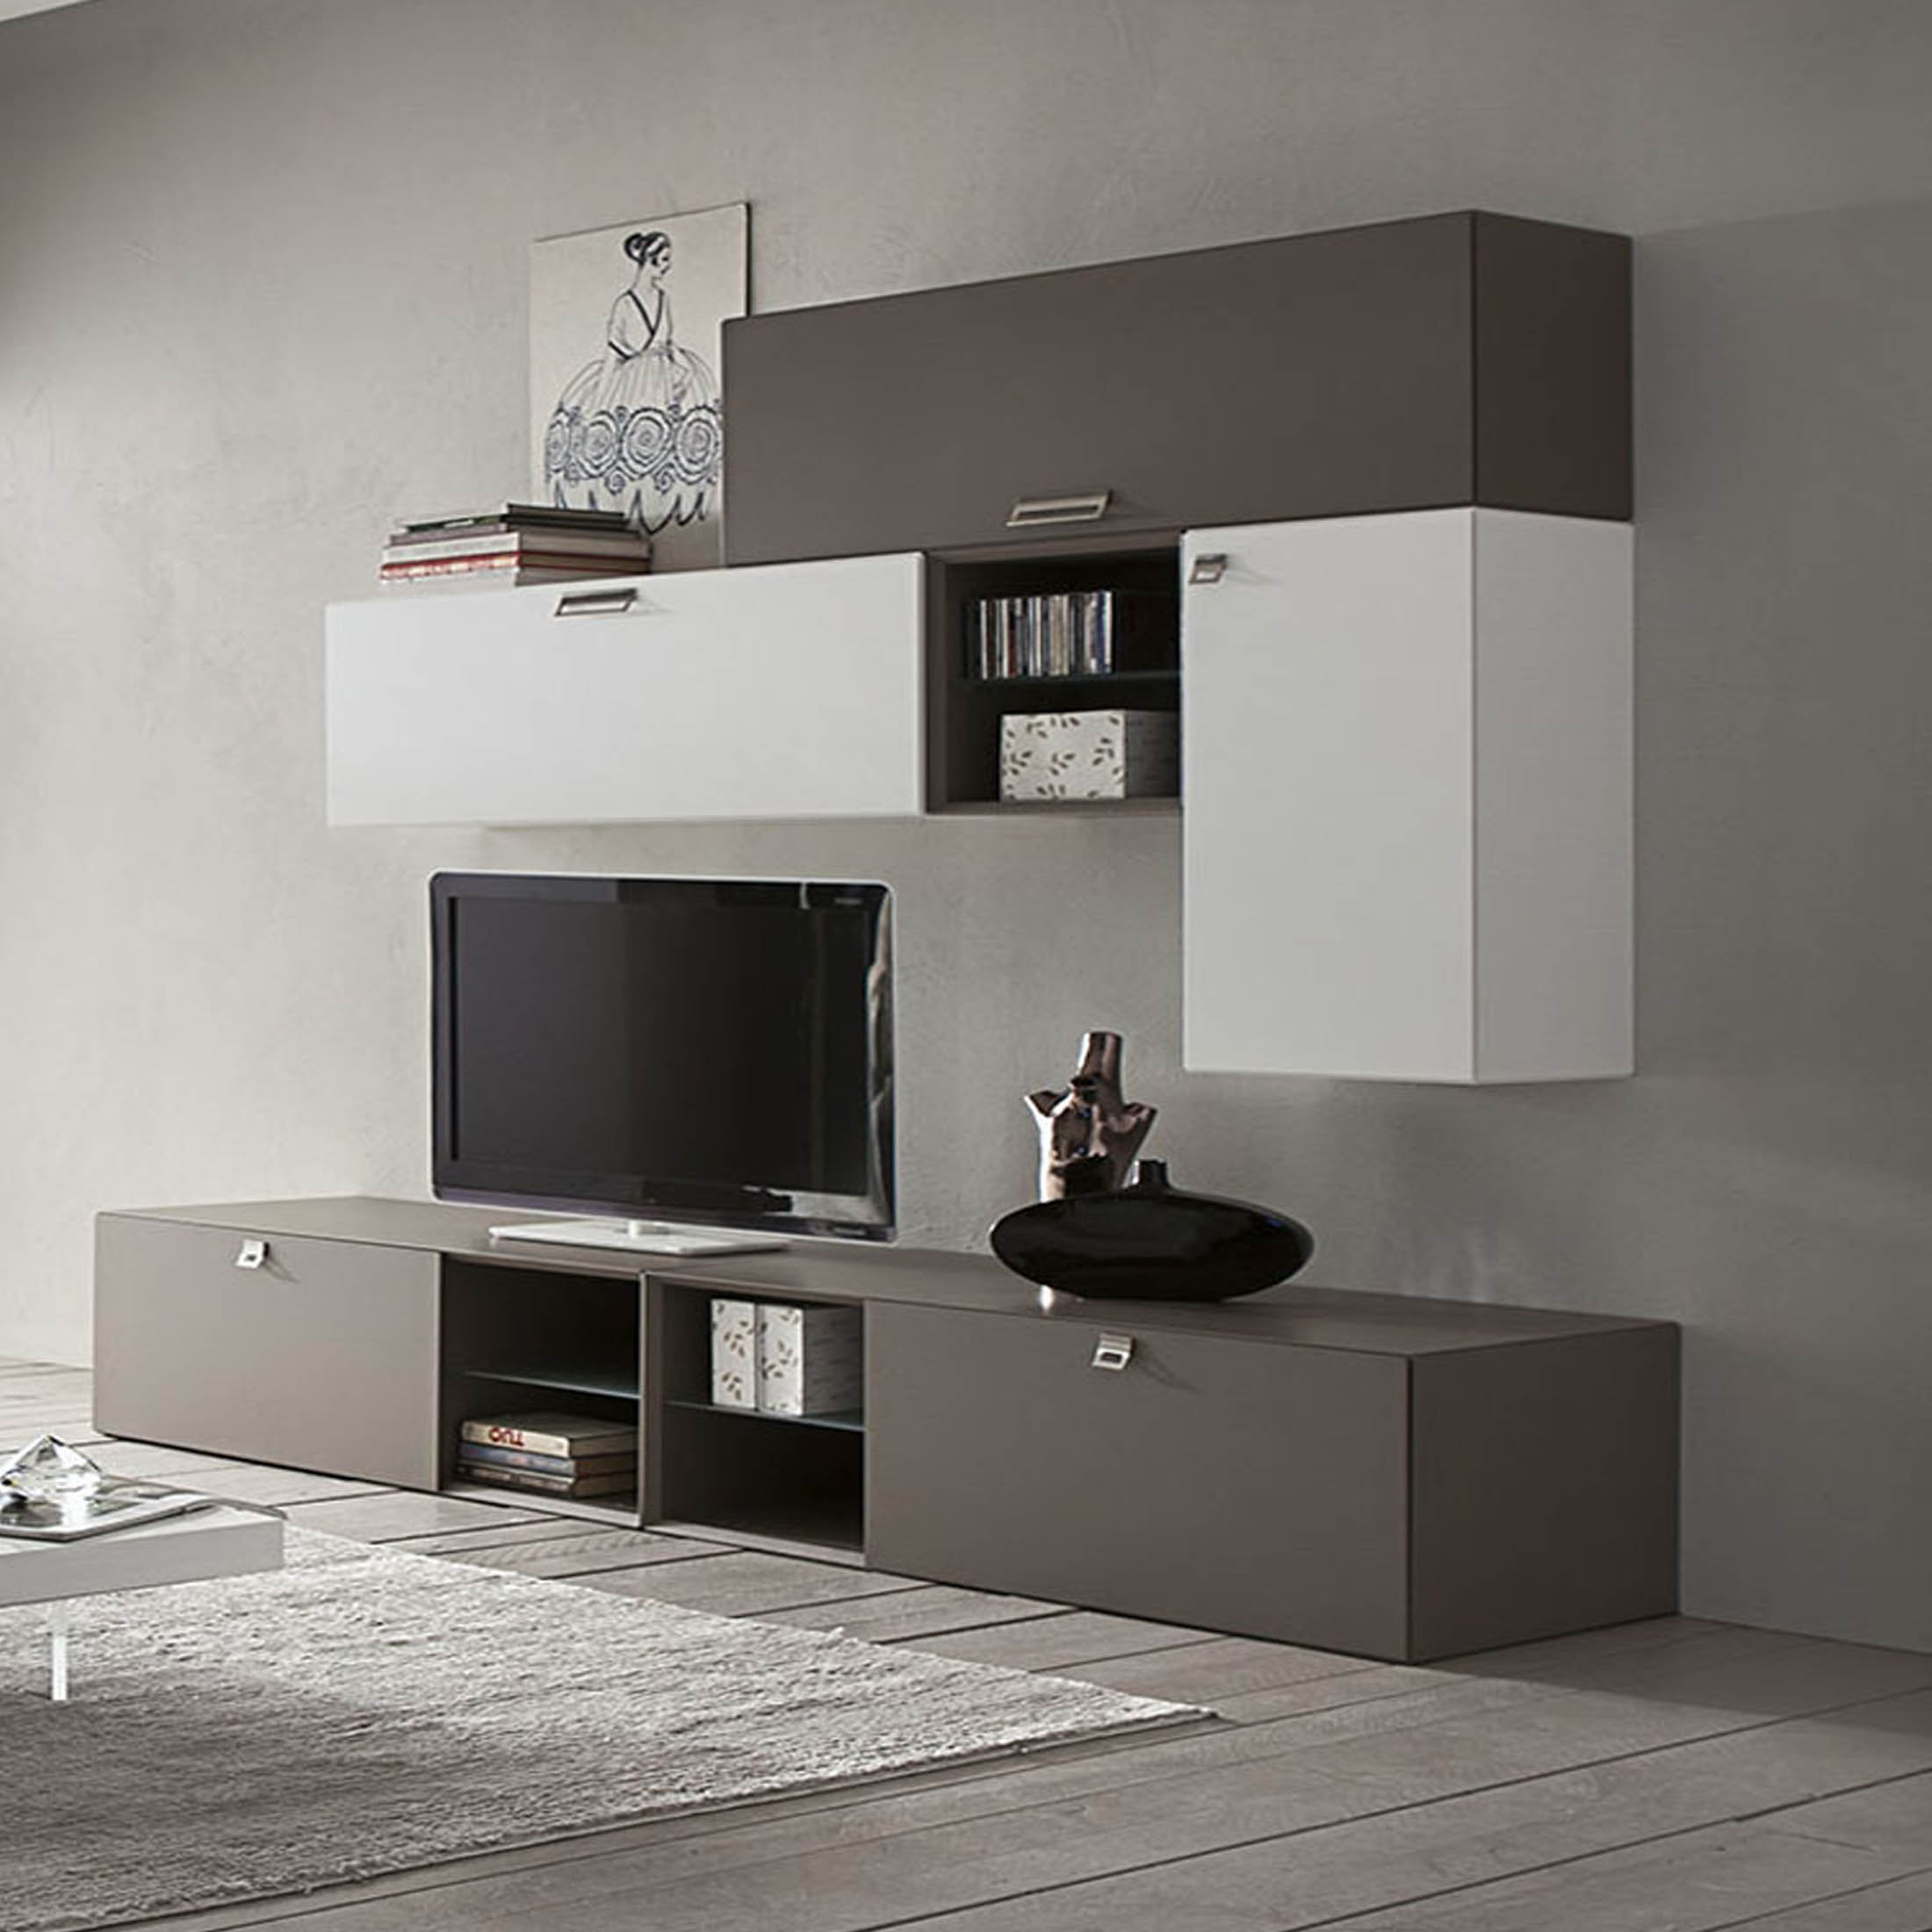 Inspiration gallery - Dresser as tv stand in living room ...